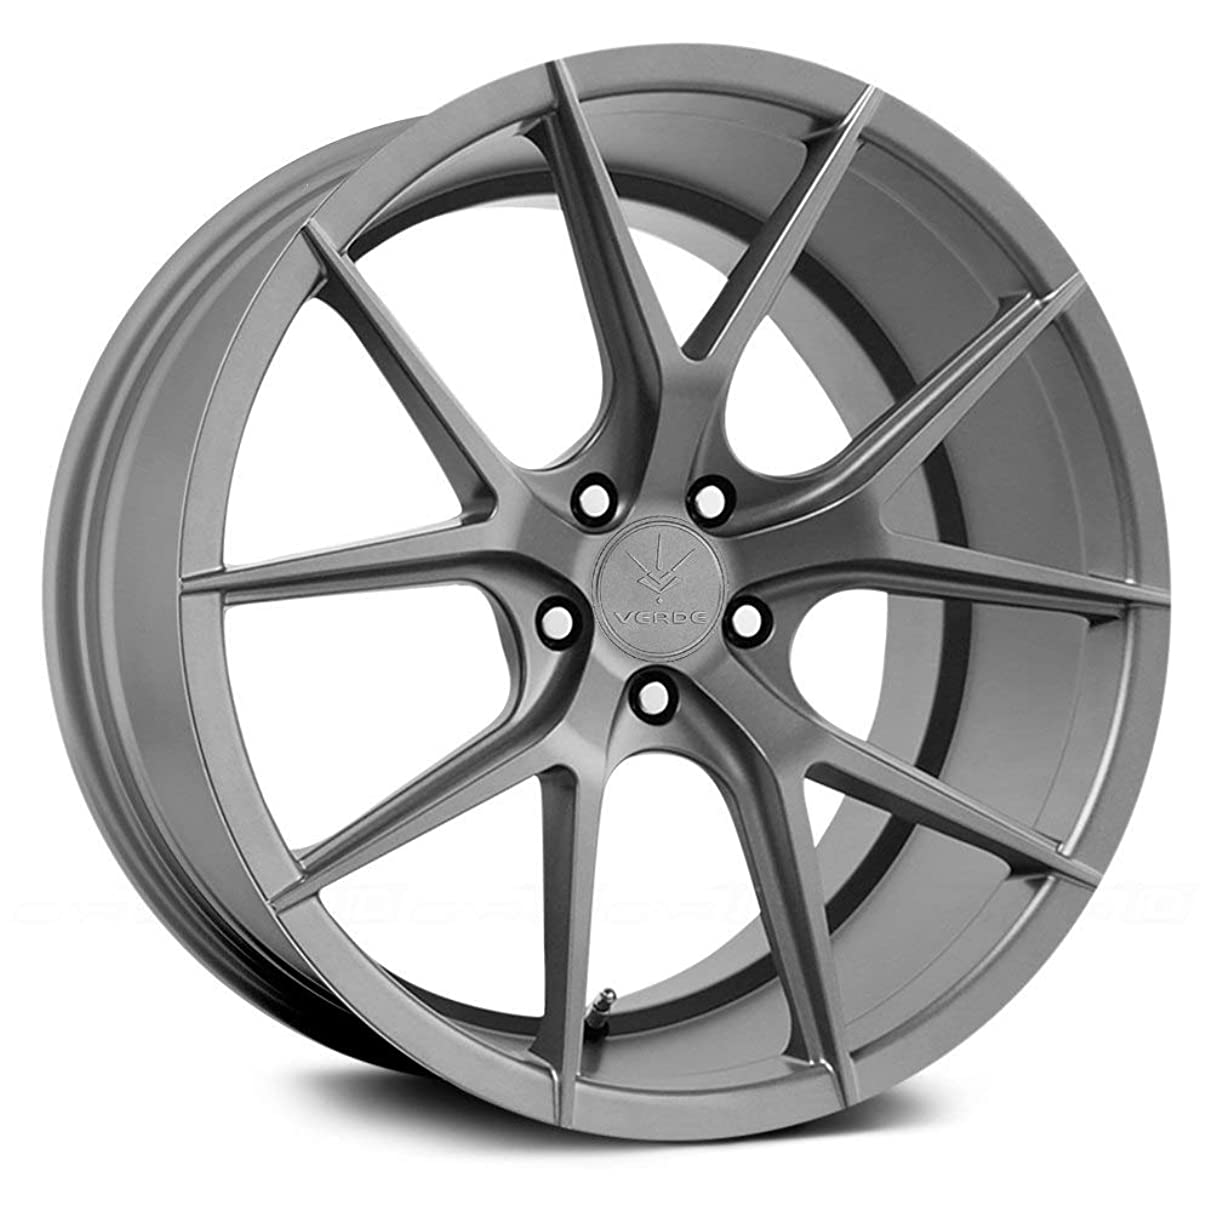 Verde Custom Wheels Axis Matte Graphite Wheel with Painted Finish (19 x 9.5 inches /5 x 4 mm, 20 mm Offset)